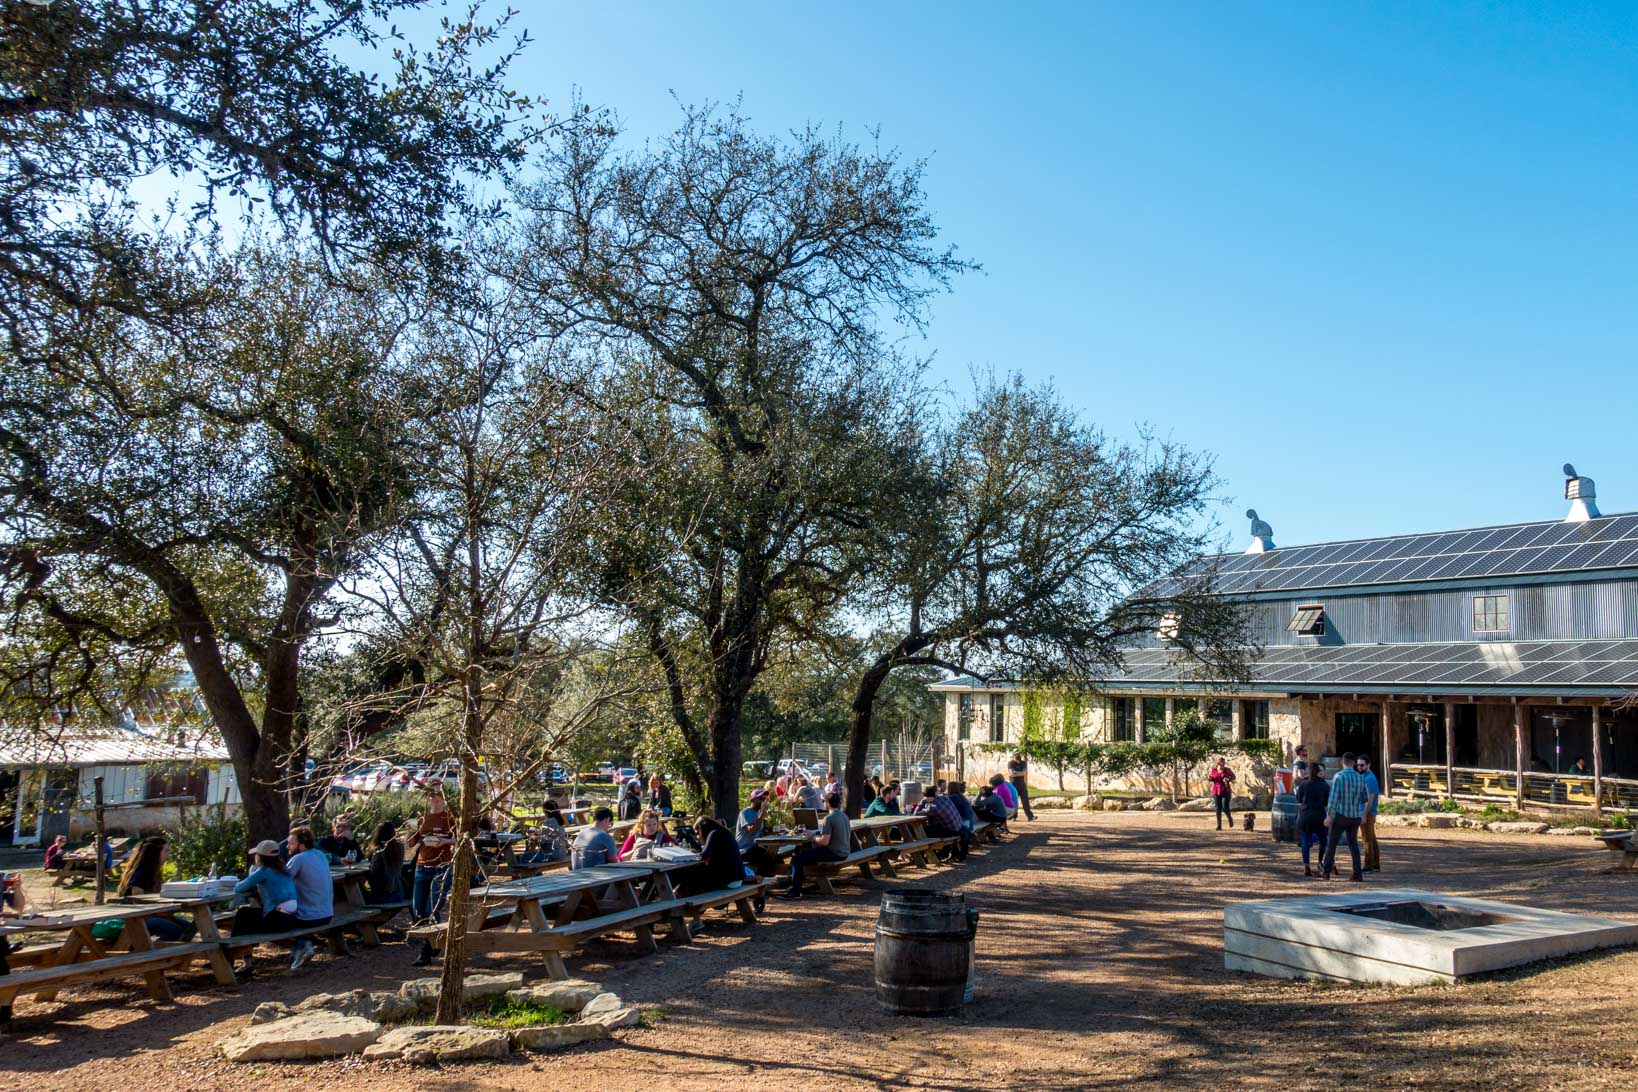 People spending time at Jester King Brewery